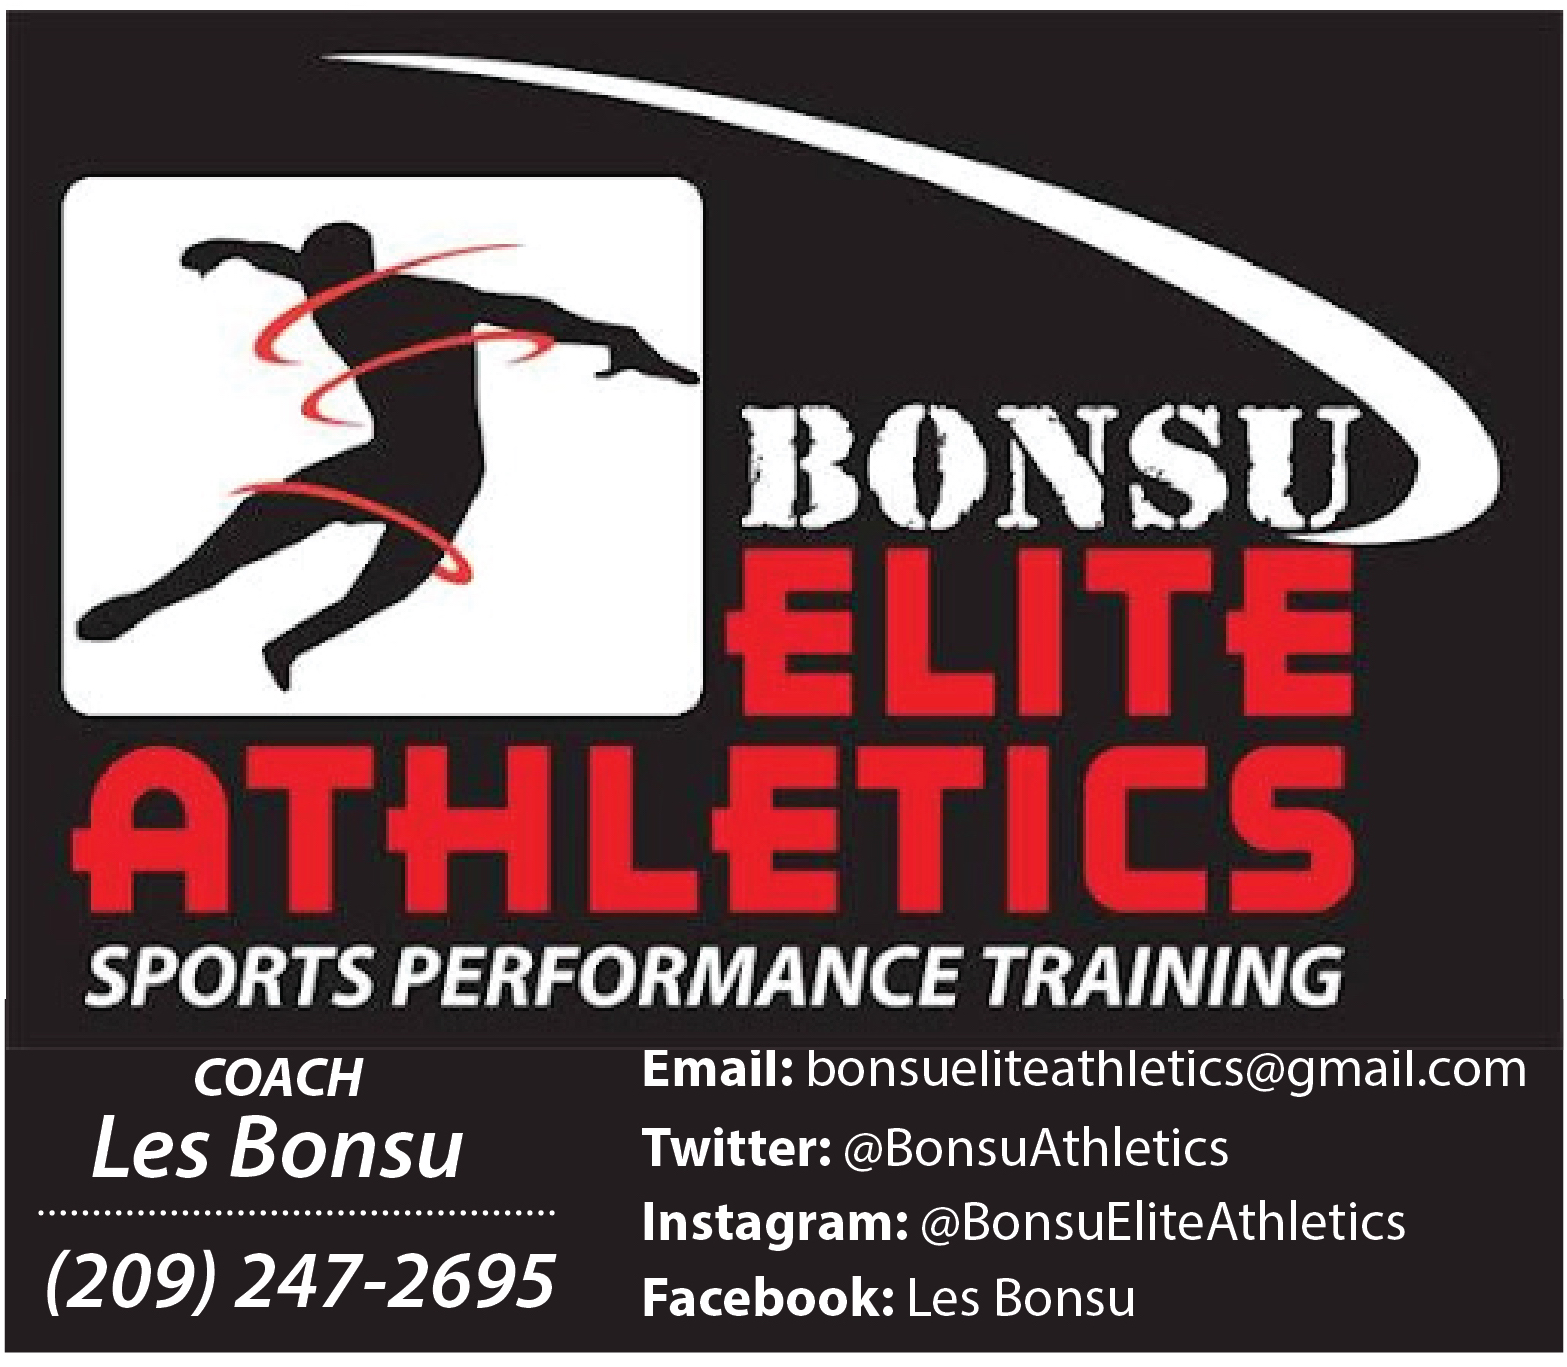 Bonsu Elite Athletics - 2018 - 1 - Sidebar - Random